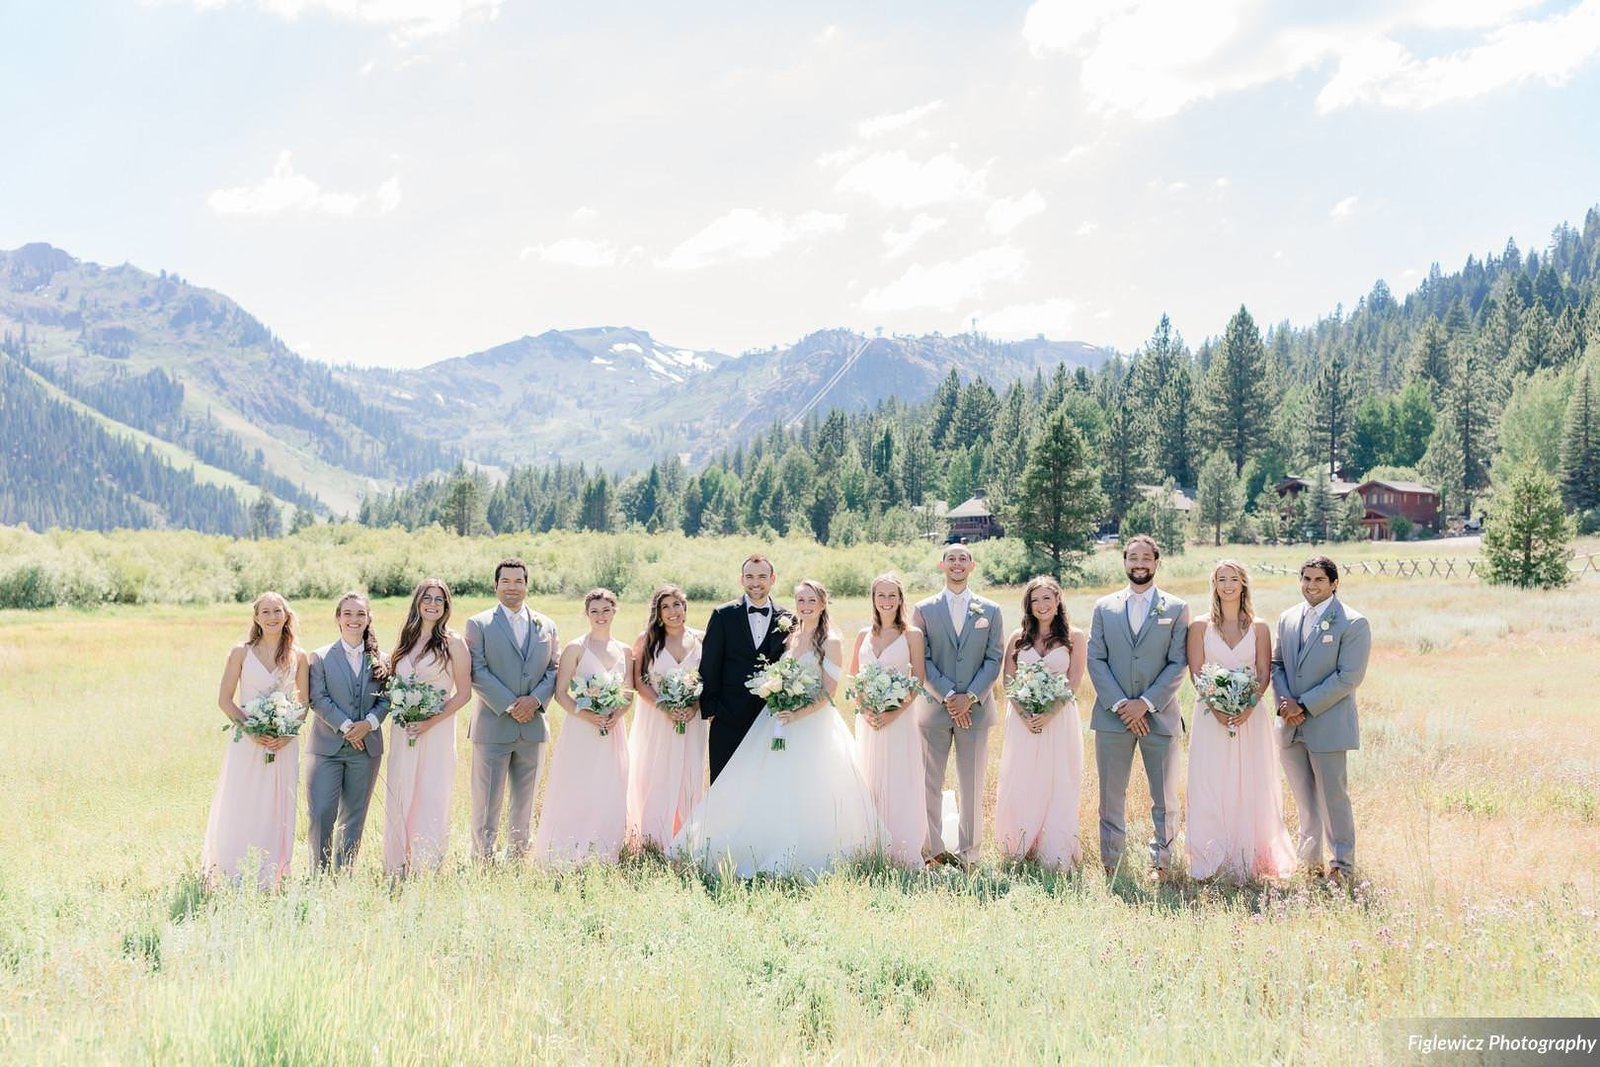 Garden_Tinsley_FiglewiczPhotography_LakeTahoeWeddingSquawValleyCreekTaylorBrendan00039_big